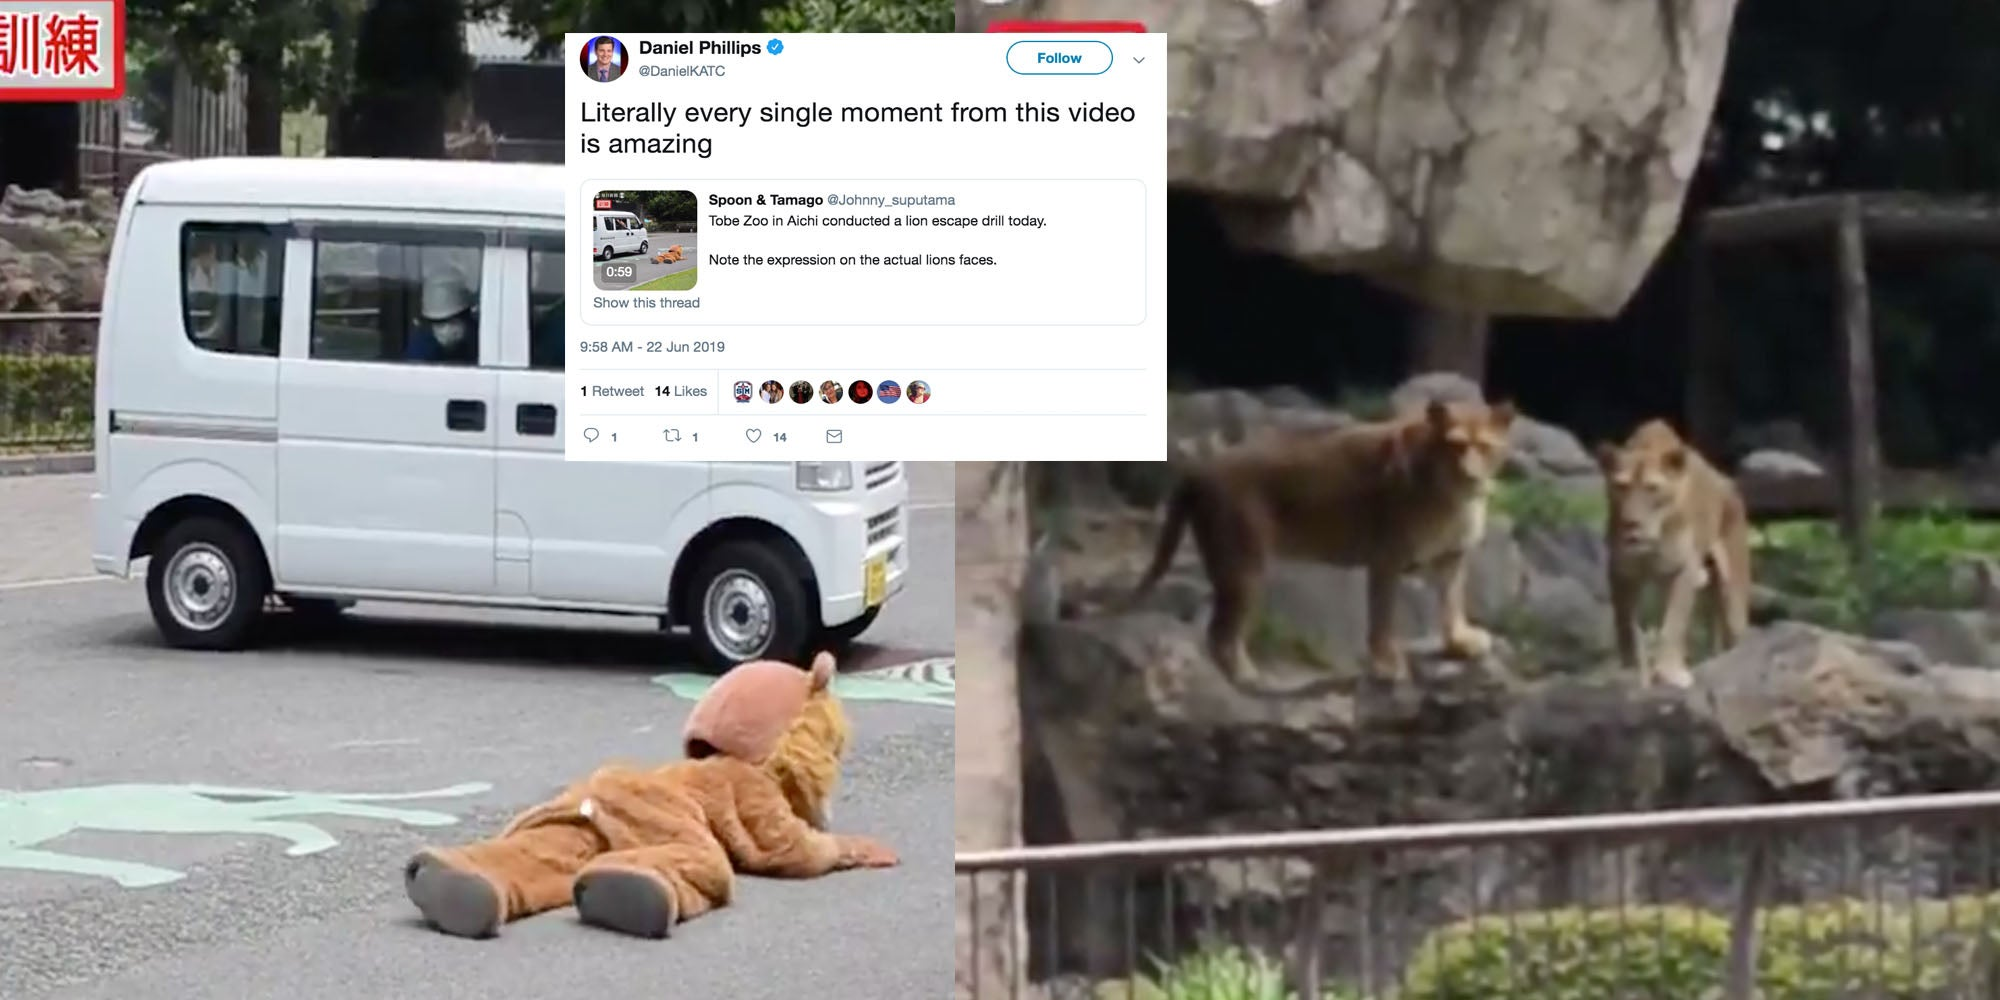 Japan zoo uses man in furry suit during 'escaped lion drill'